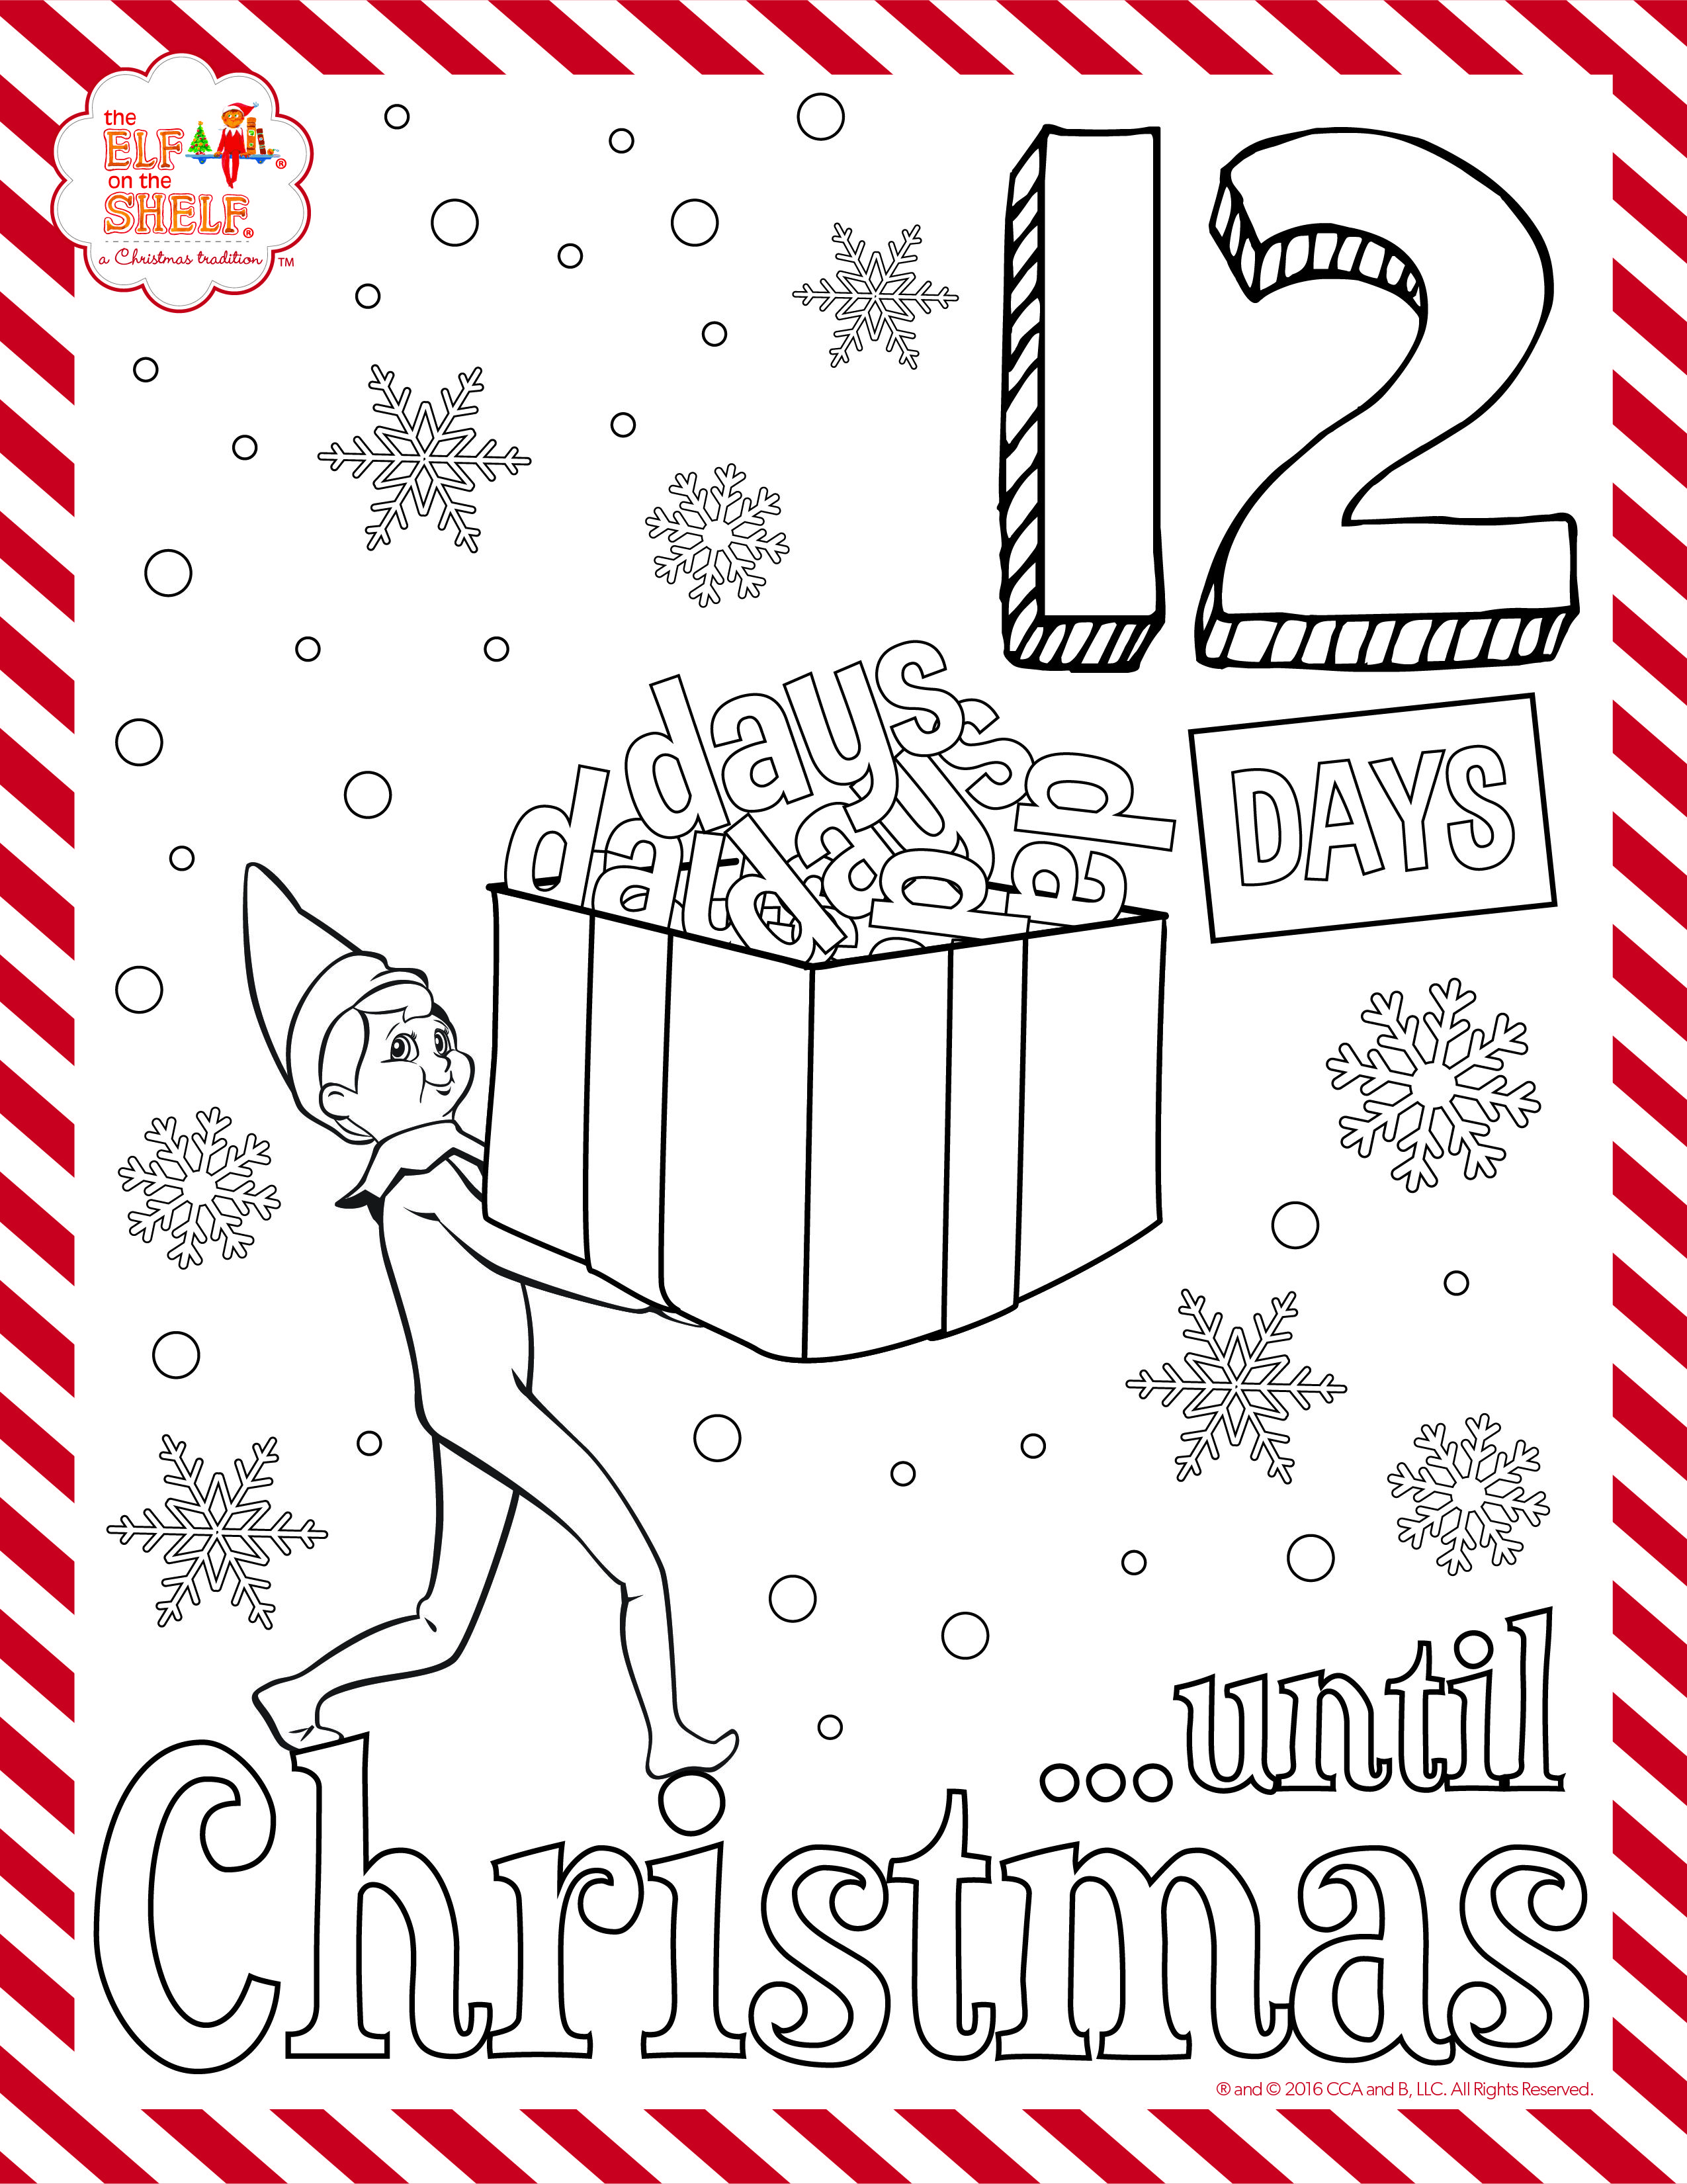 12 Days To Christmas Get The Full Set Of Coloring Pages